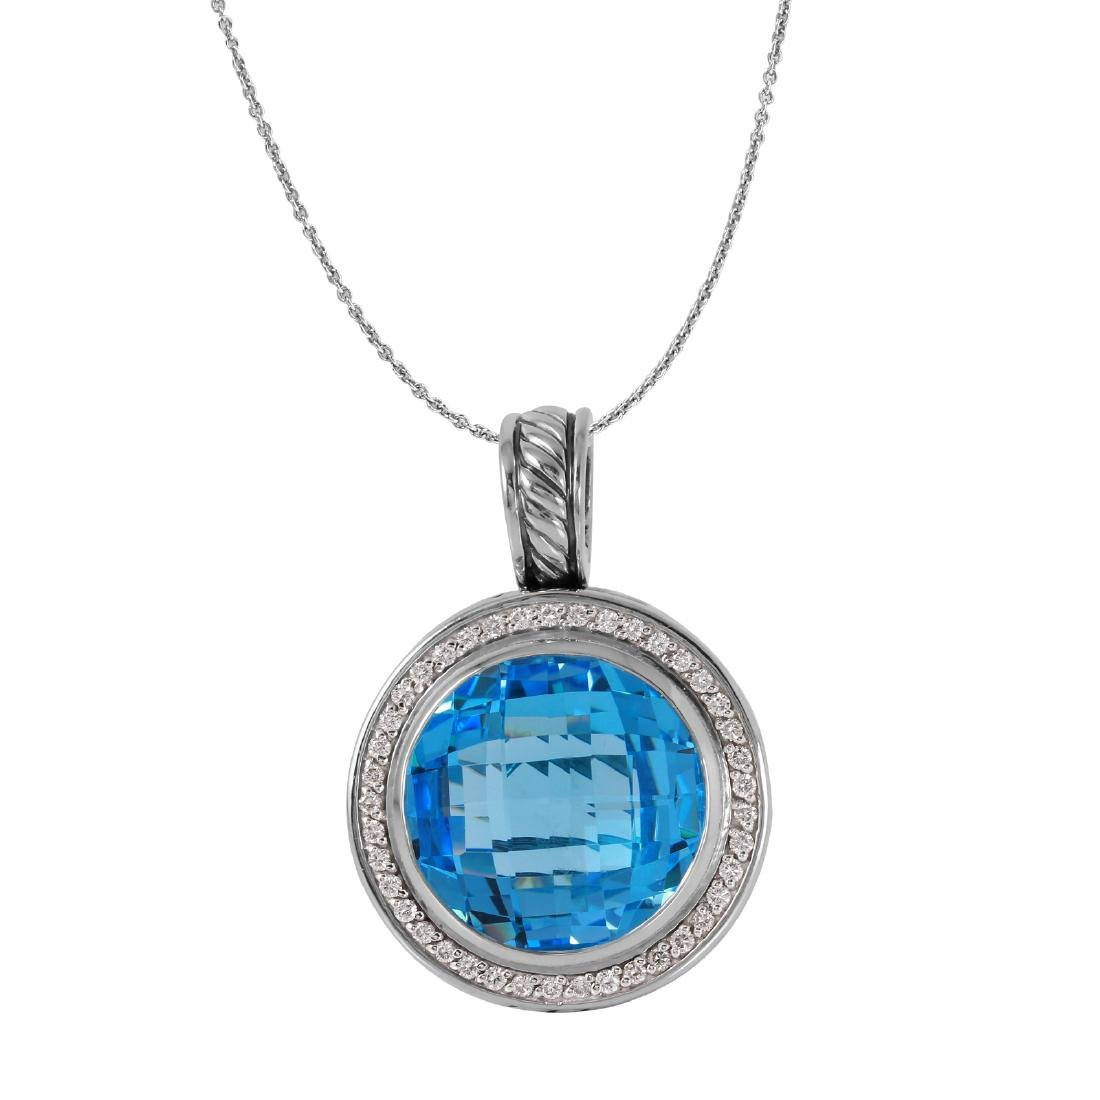 David Yurman Diamond Albion Topaz Pendant